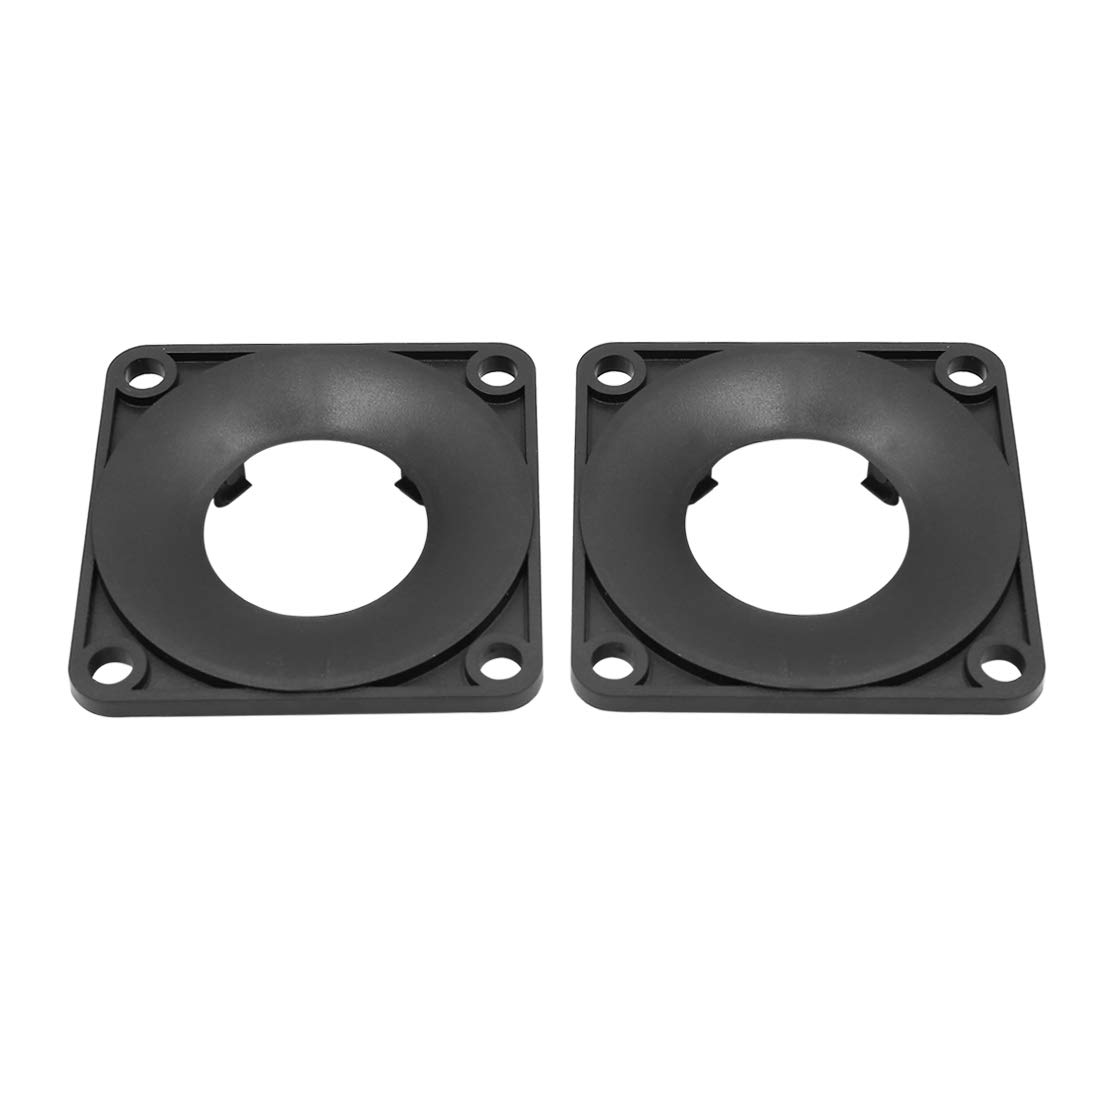 uxcell Pair Black Triangle Car Speaker Trim Cover Tweeter Protector for Nissan Teana